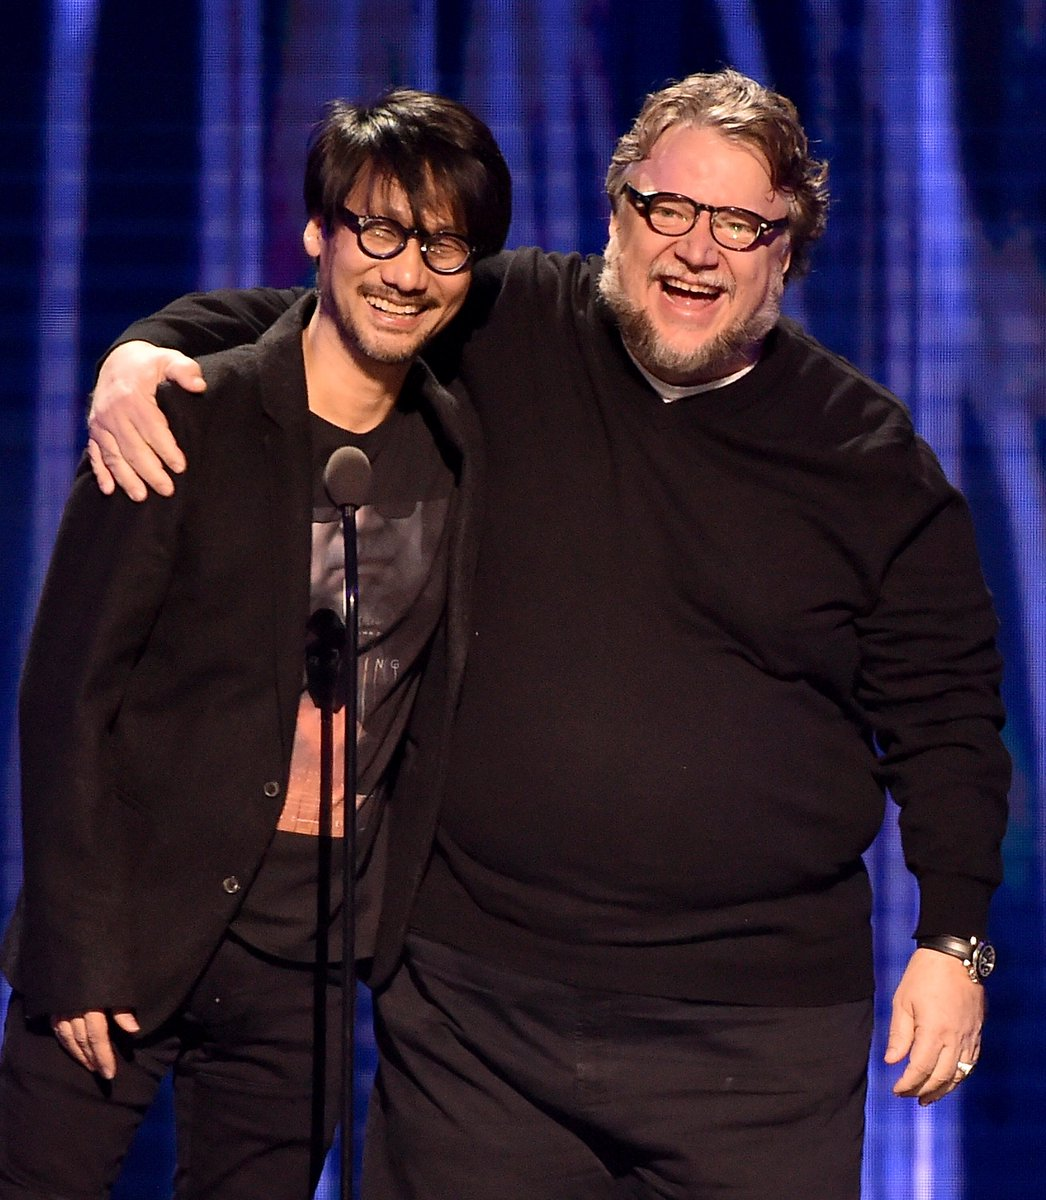 #TheGameAwards memory: @Kojima_Hideo and @RealGDT reunited on stage! https://t.co/FaedM8iLlH